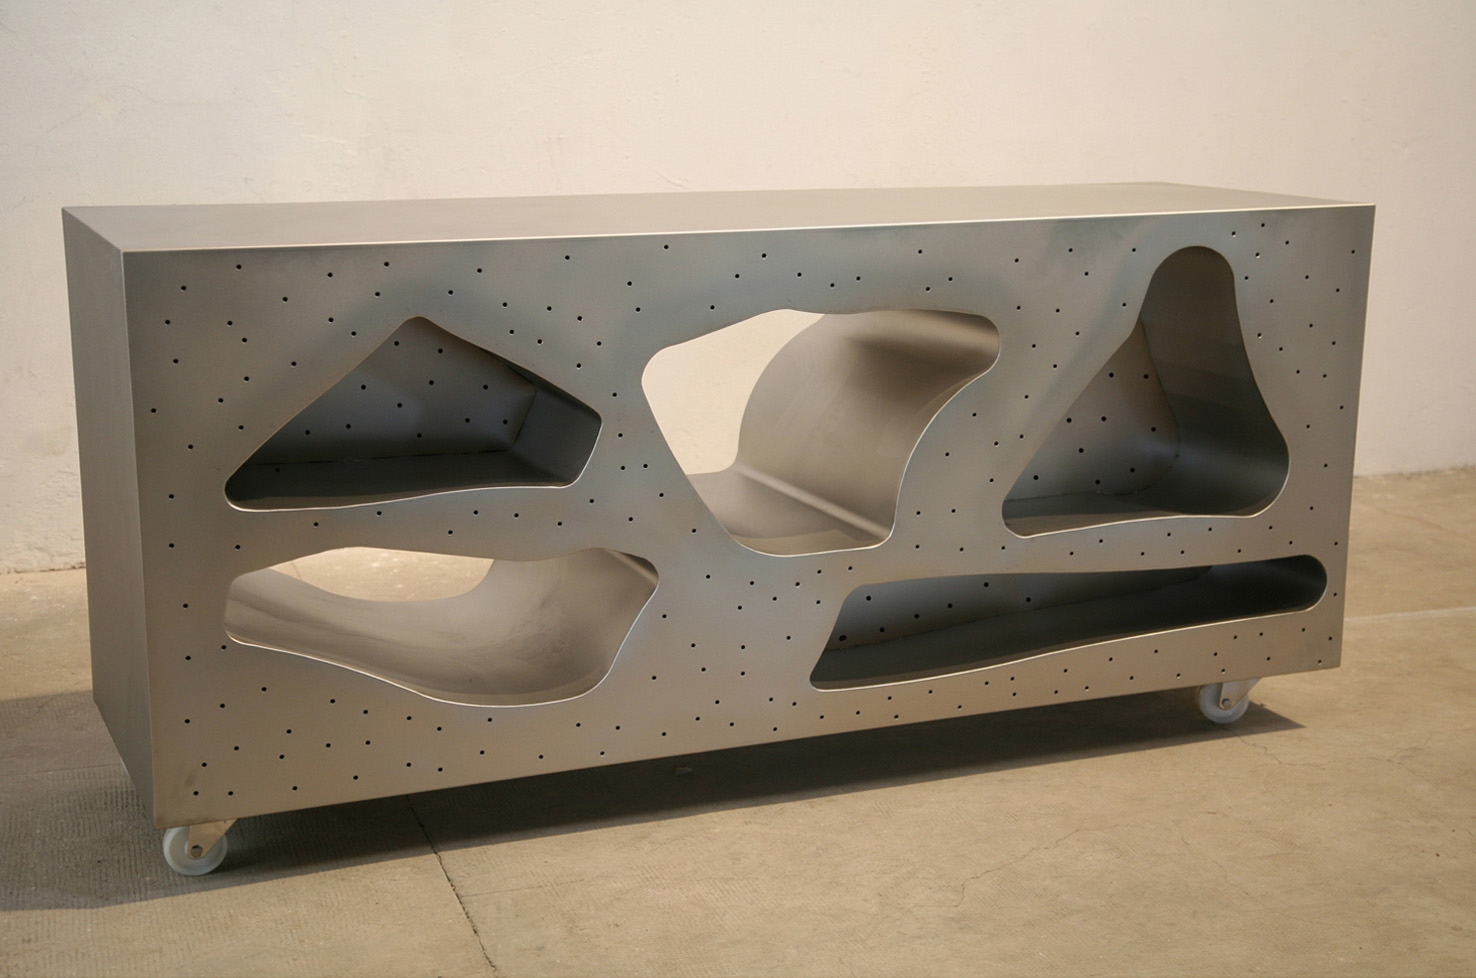 Mueble 1, 2014, satin stainless steel, 85,5 x 180,5 x 55 cm.